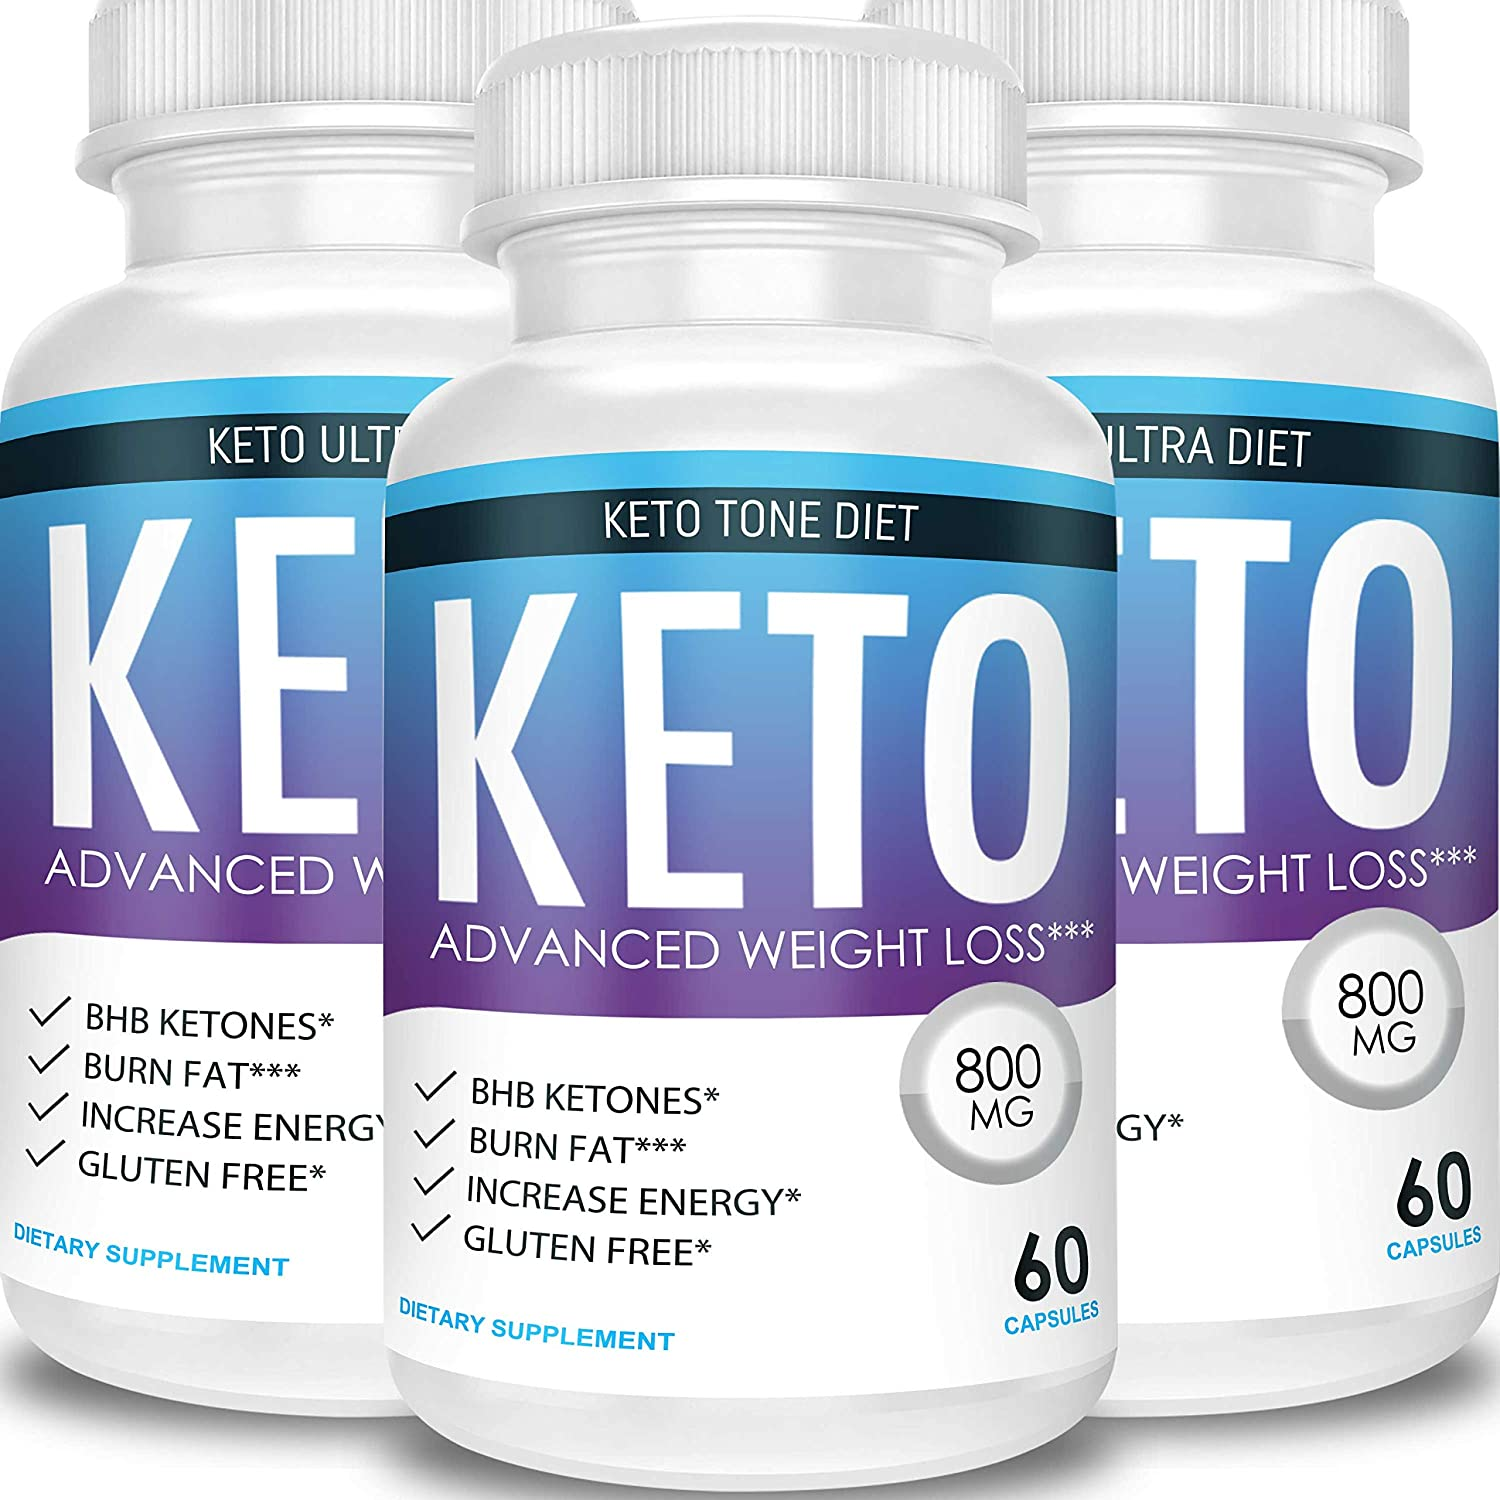 is keto diet and diet tone same product